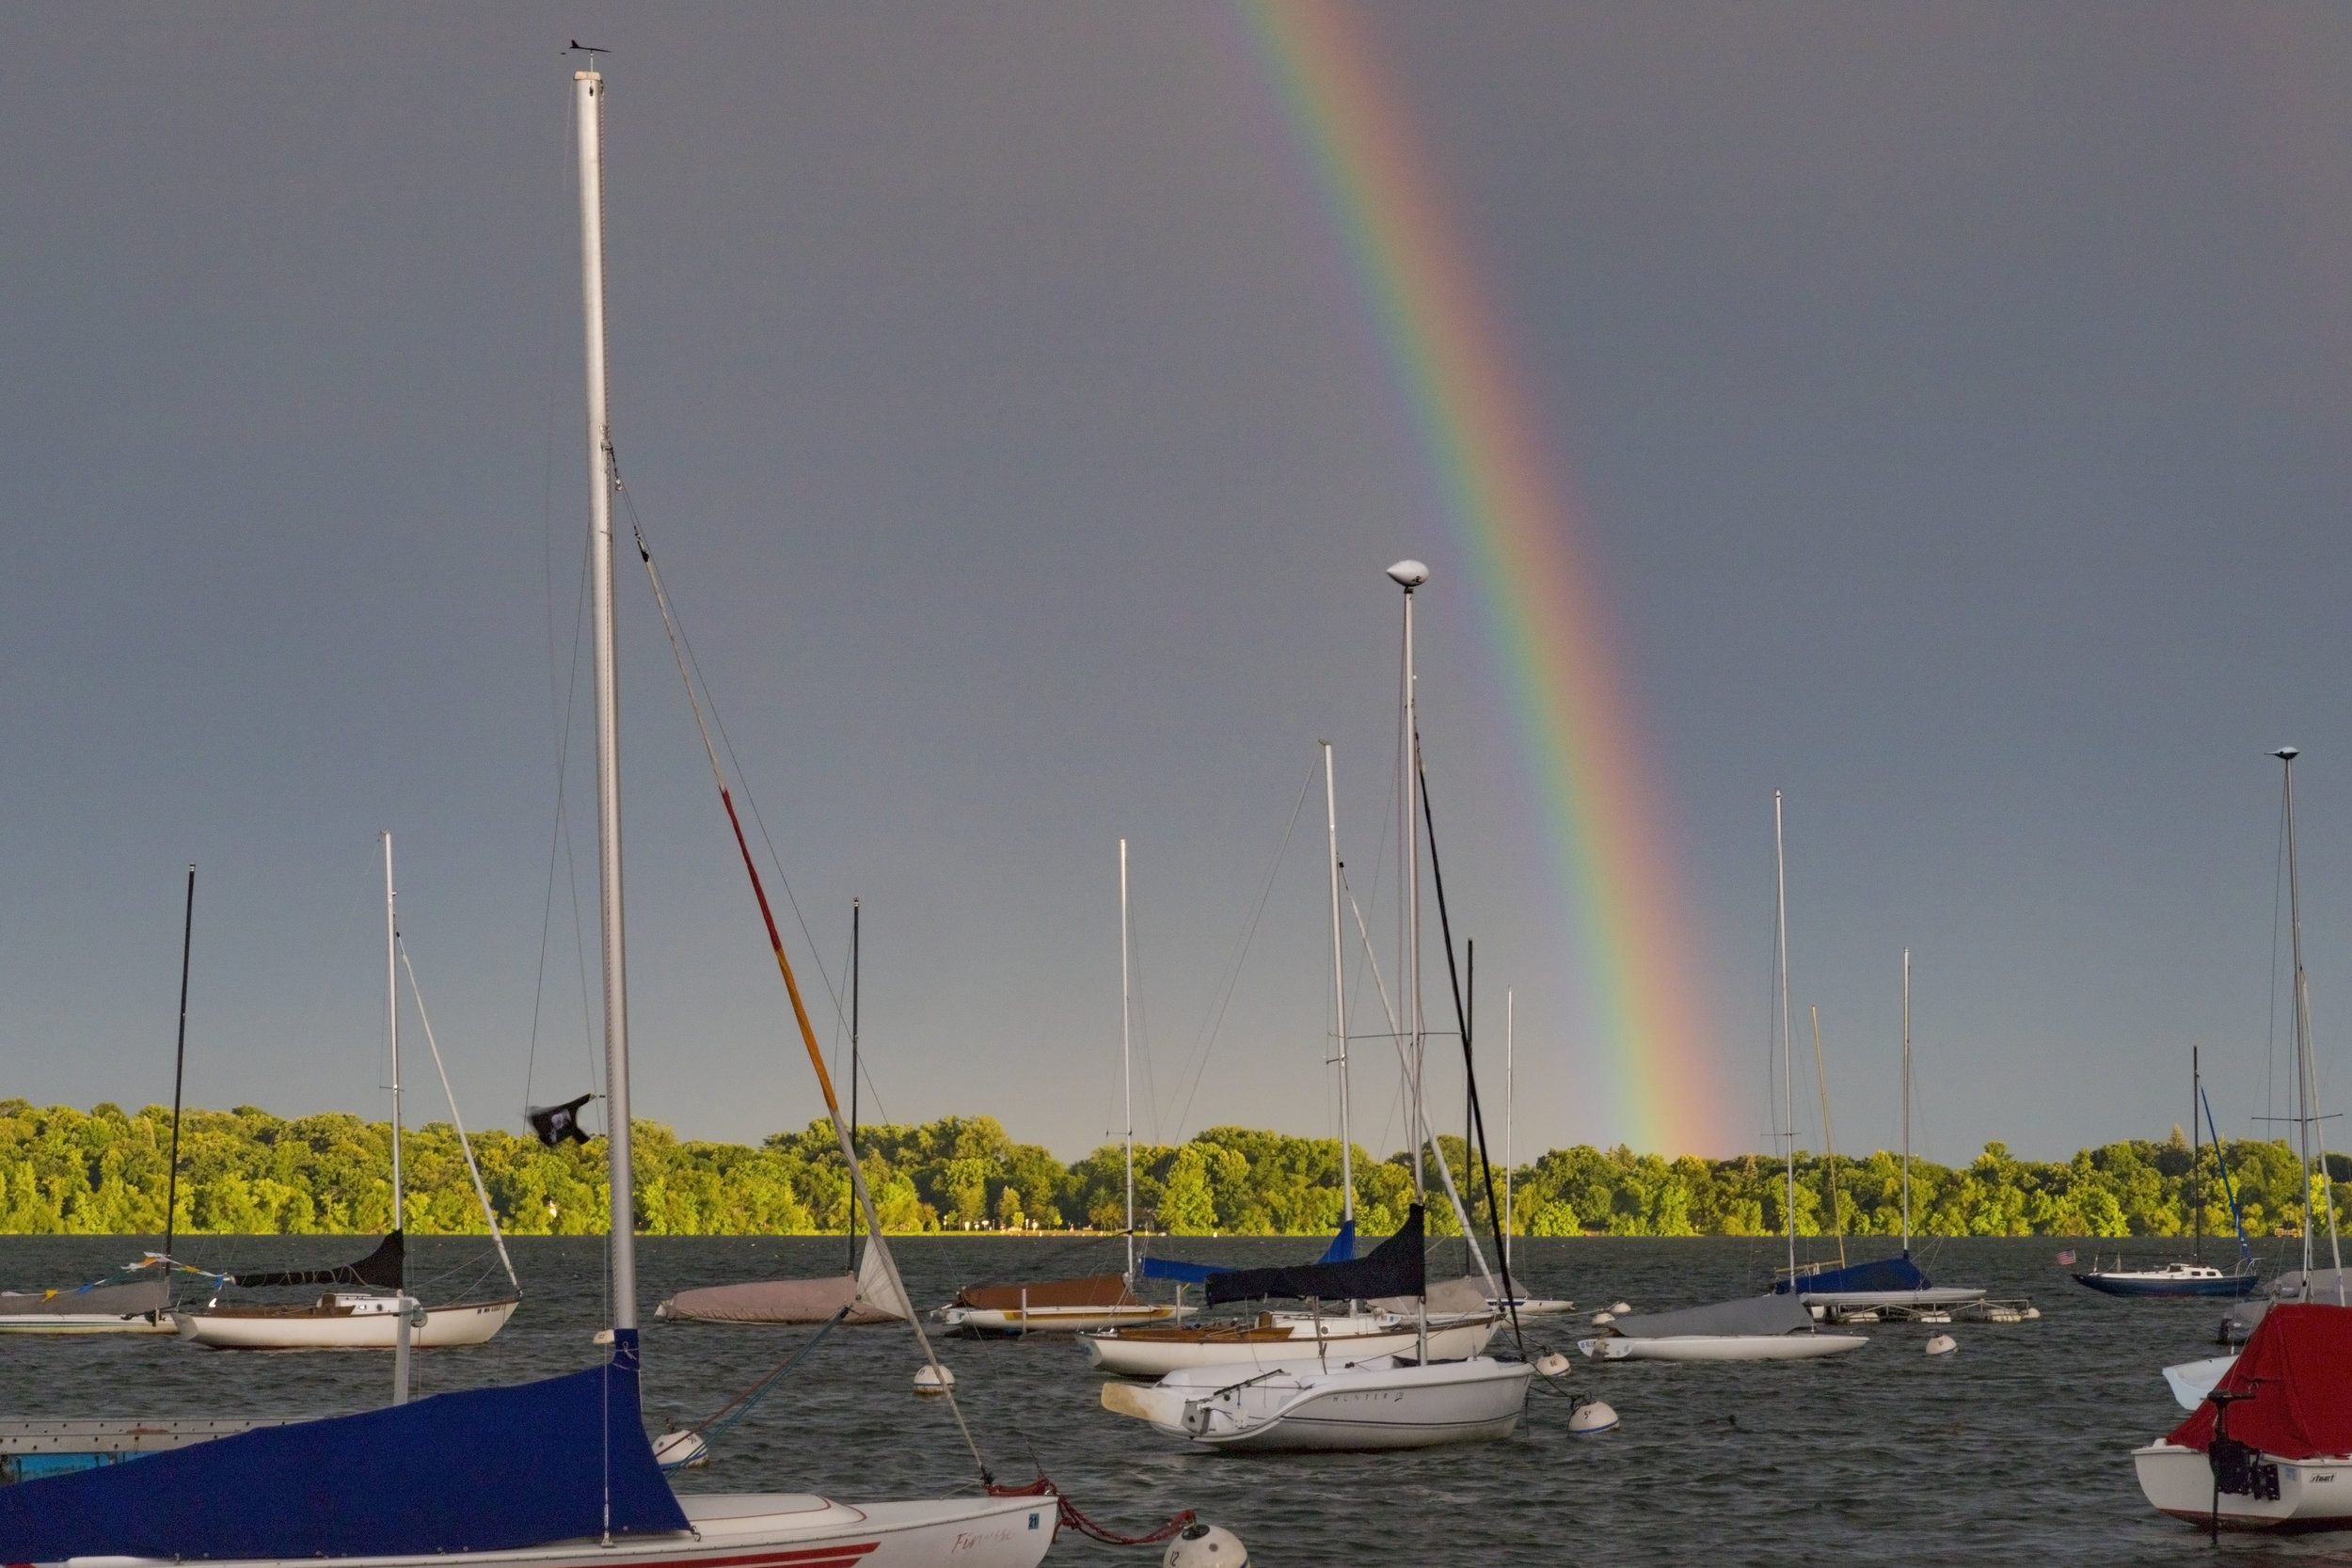 lake harriet - minneapolis, minnesota - july 15, 2019